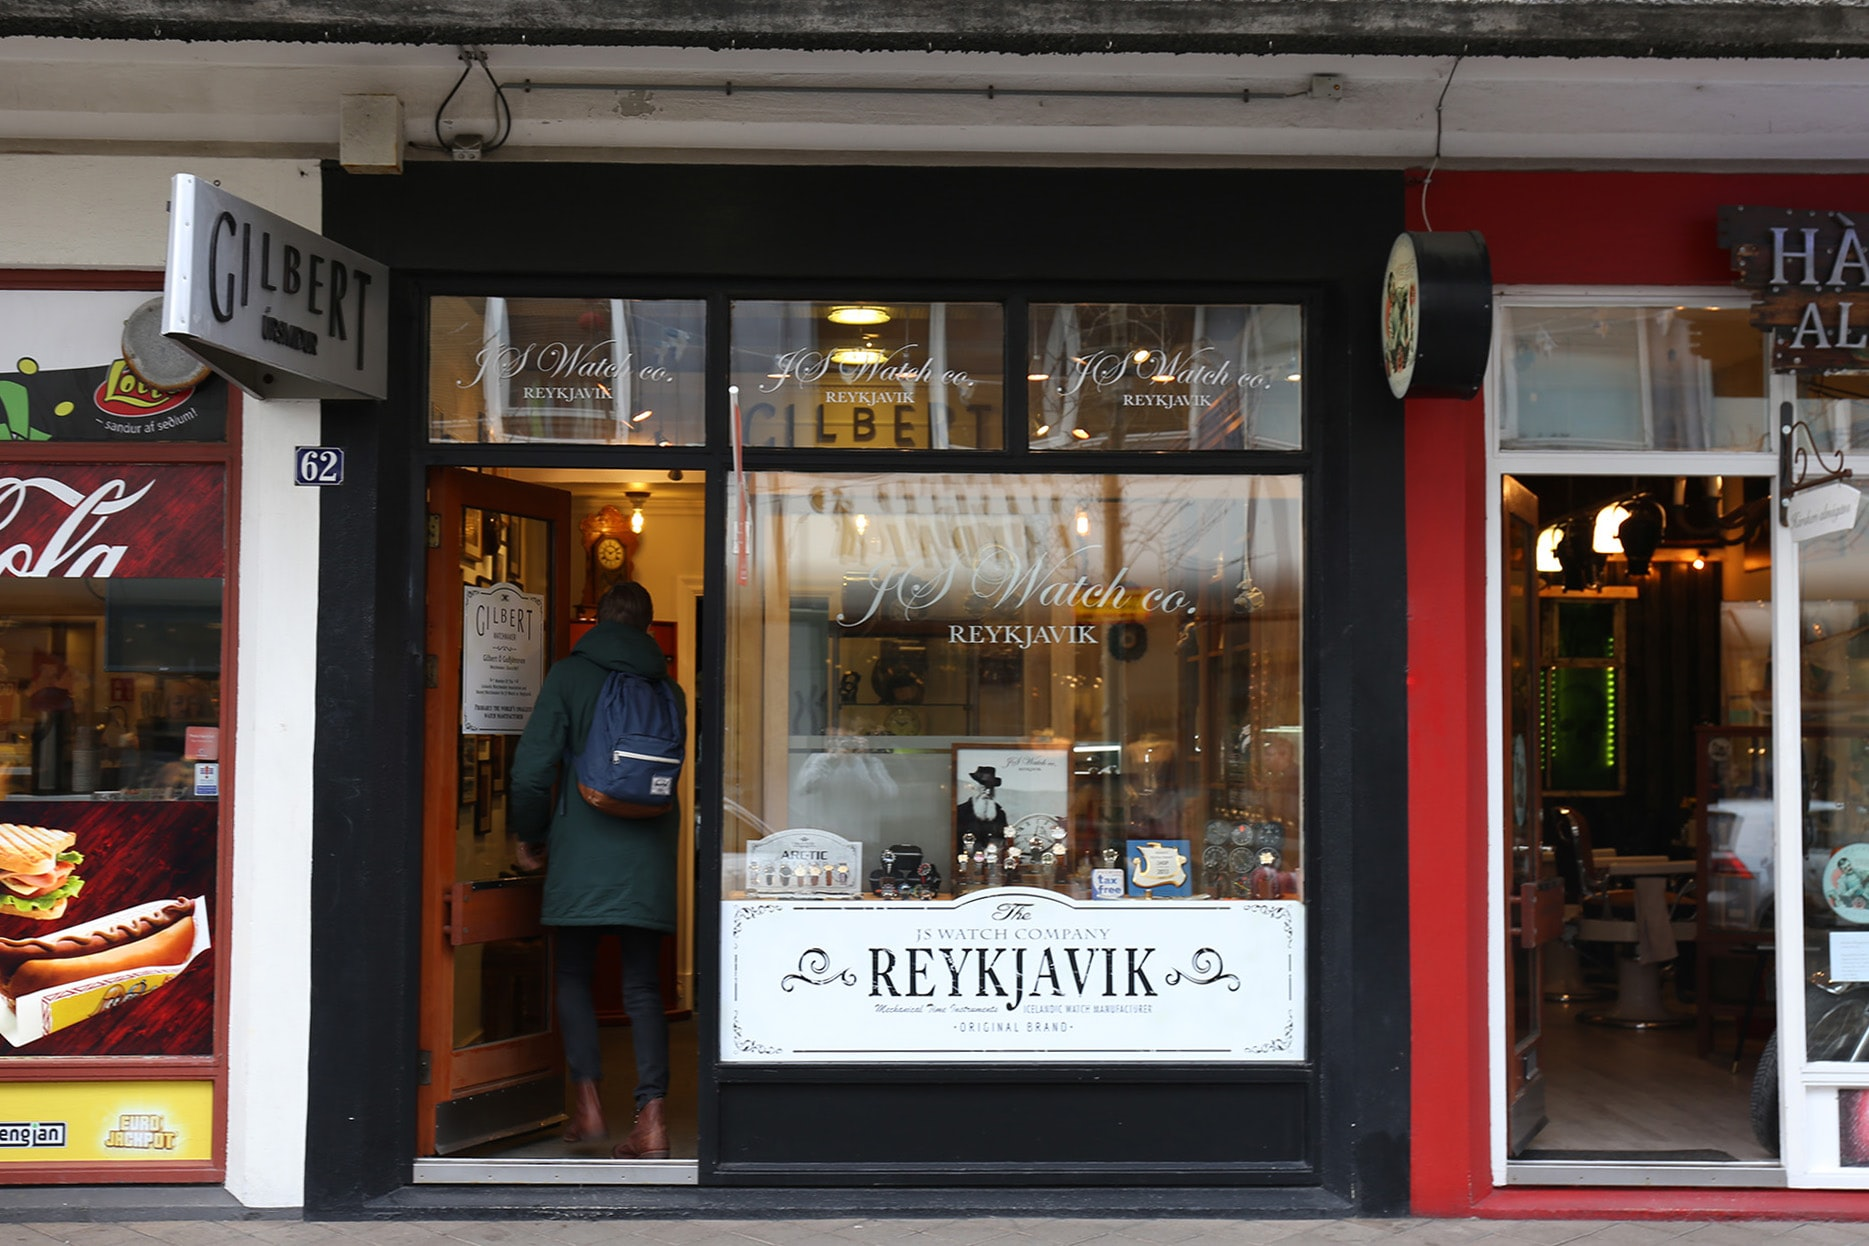 Dispatches A Visit To JS Watch pany In Reykjavik Iceland HODINKEE